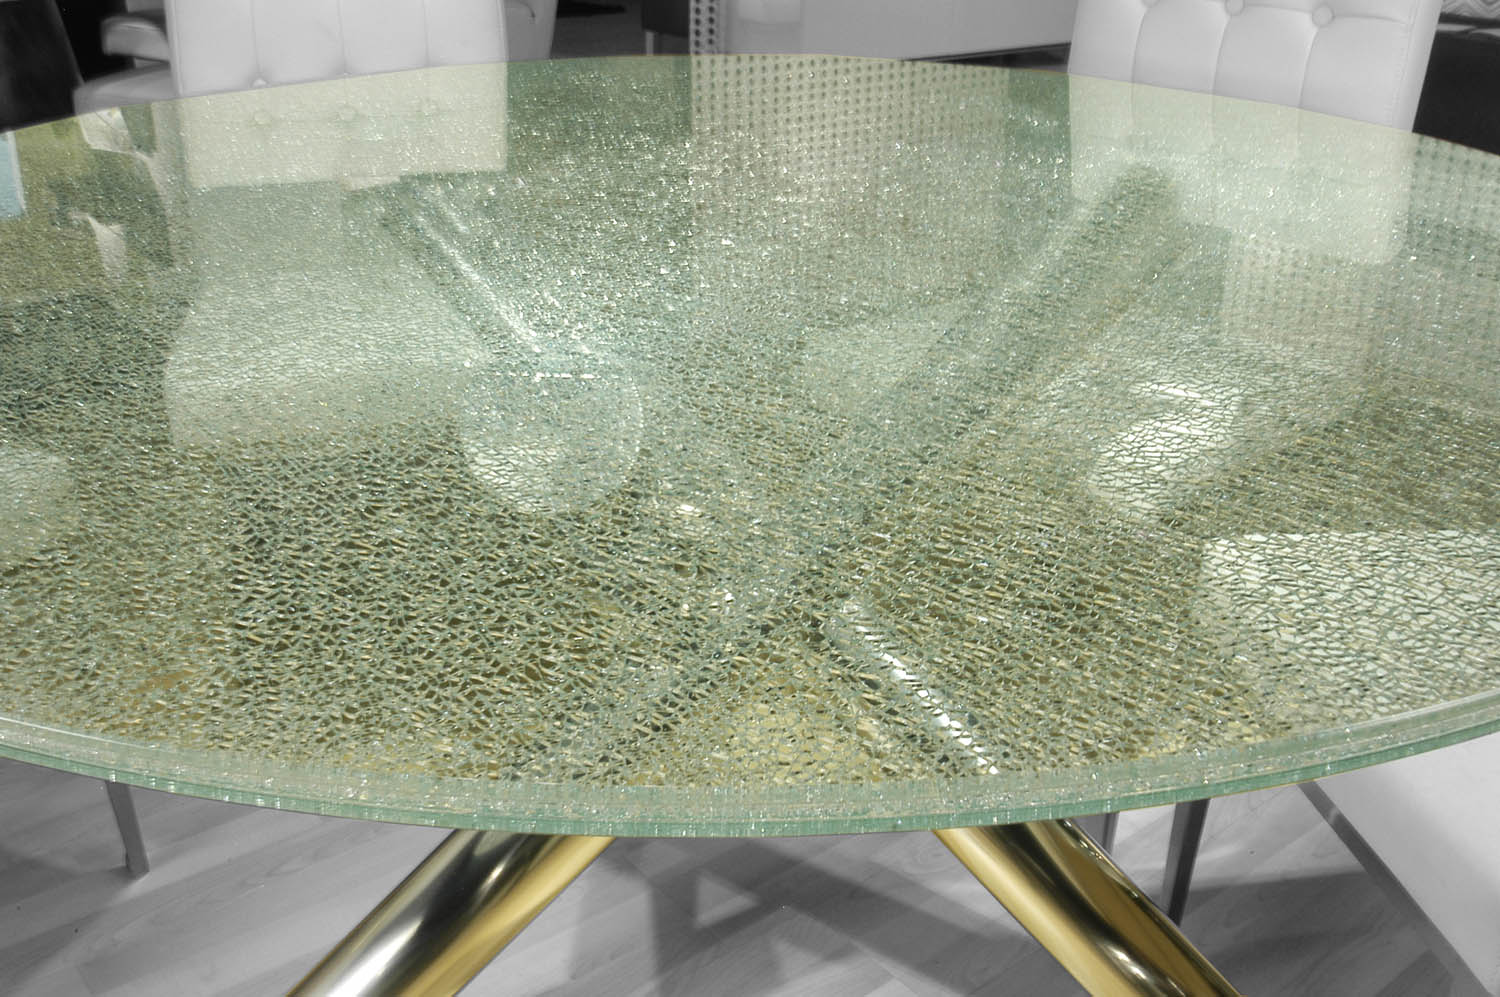 Crackled 60 Round Dining Table Top Boulevard Urban Living